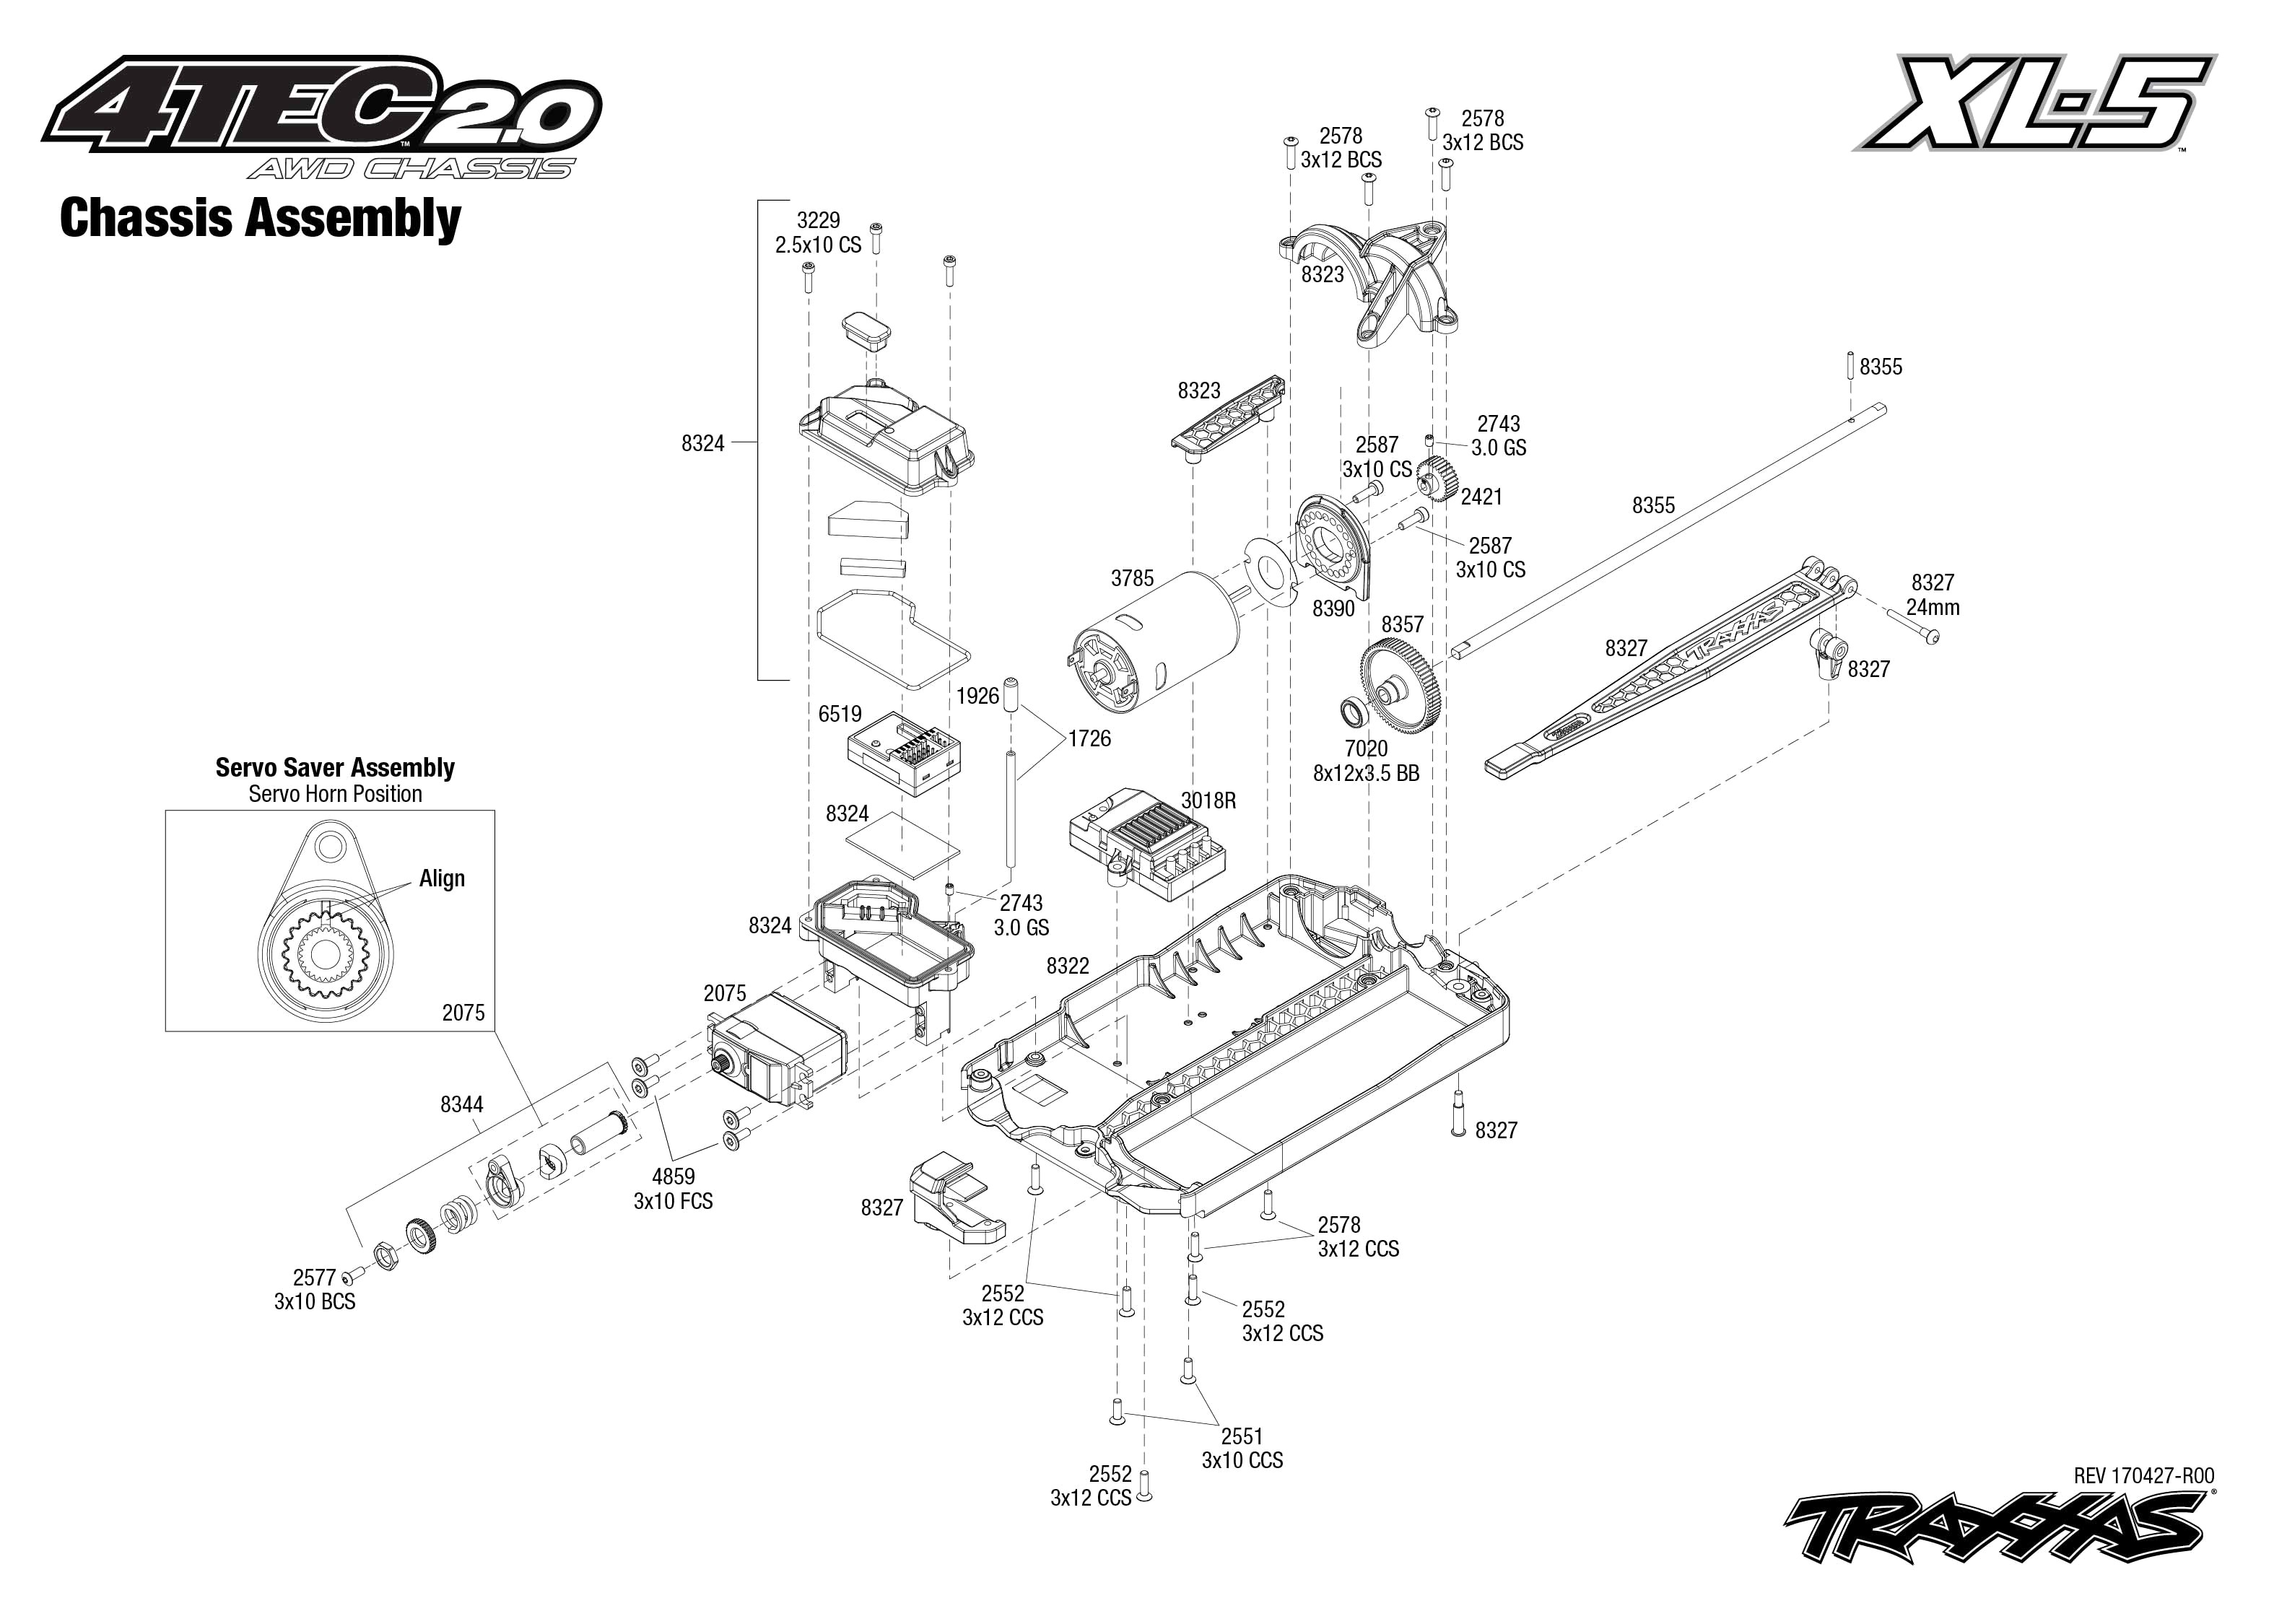 Traxxas 4 Tec Electric Manual Parts Rustler Brushed Quick Start Exploded View